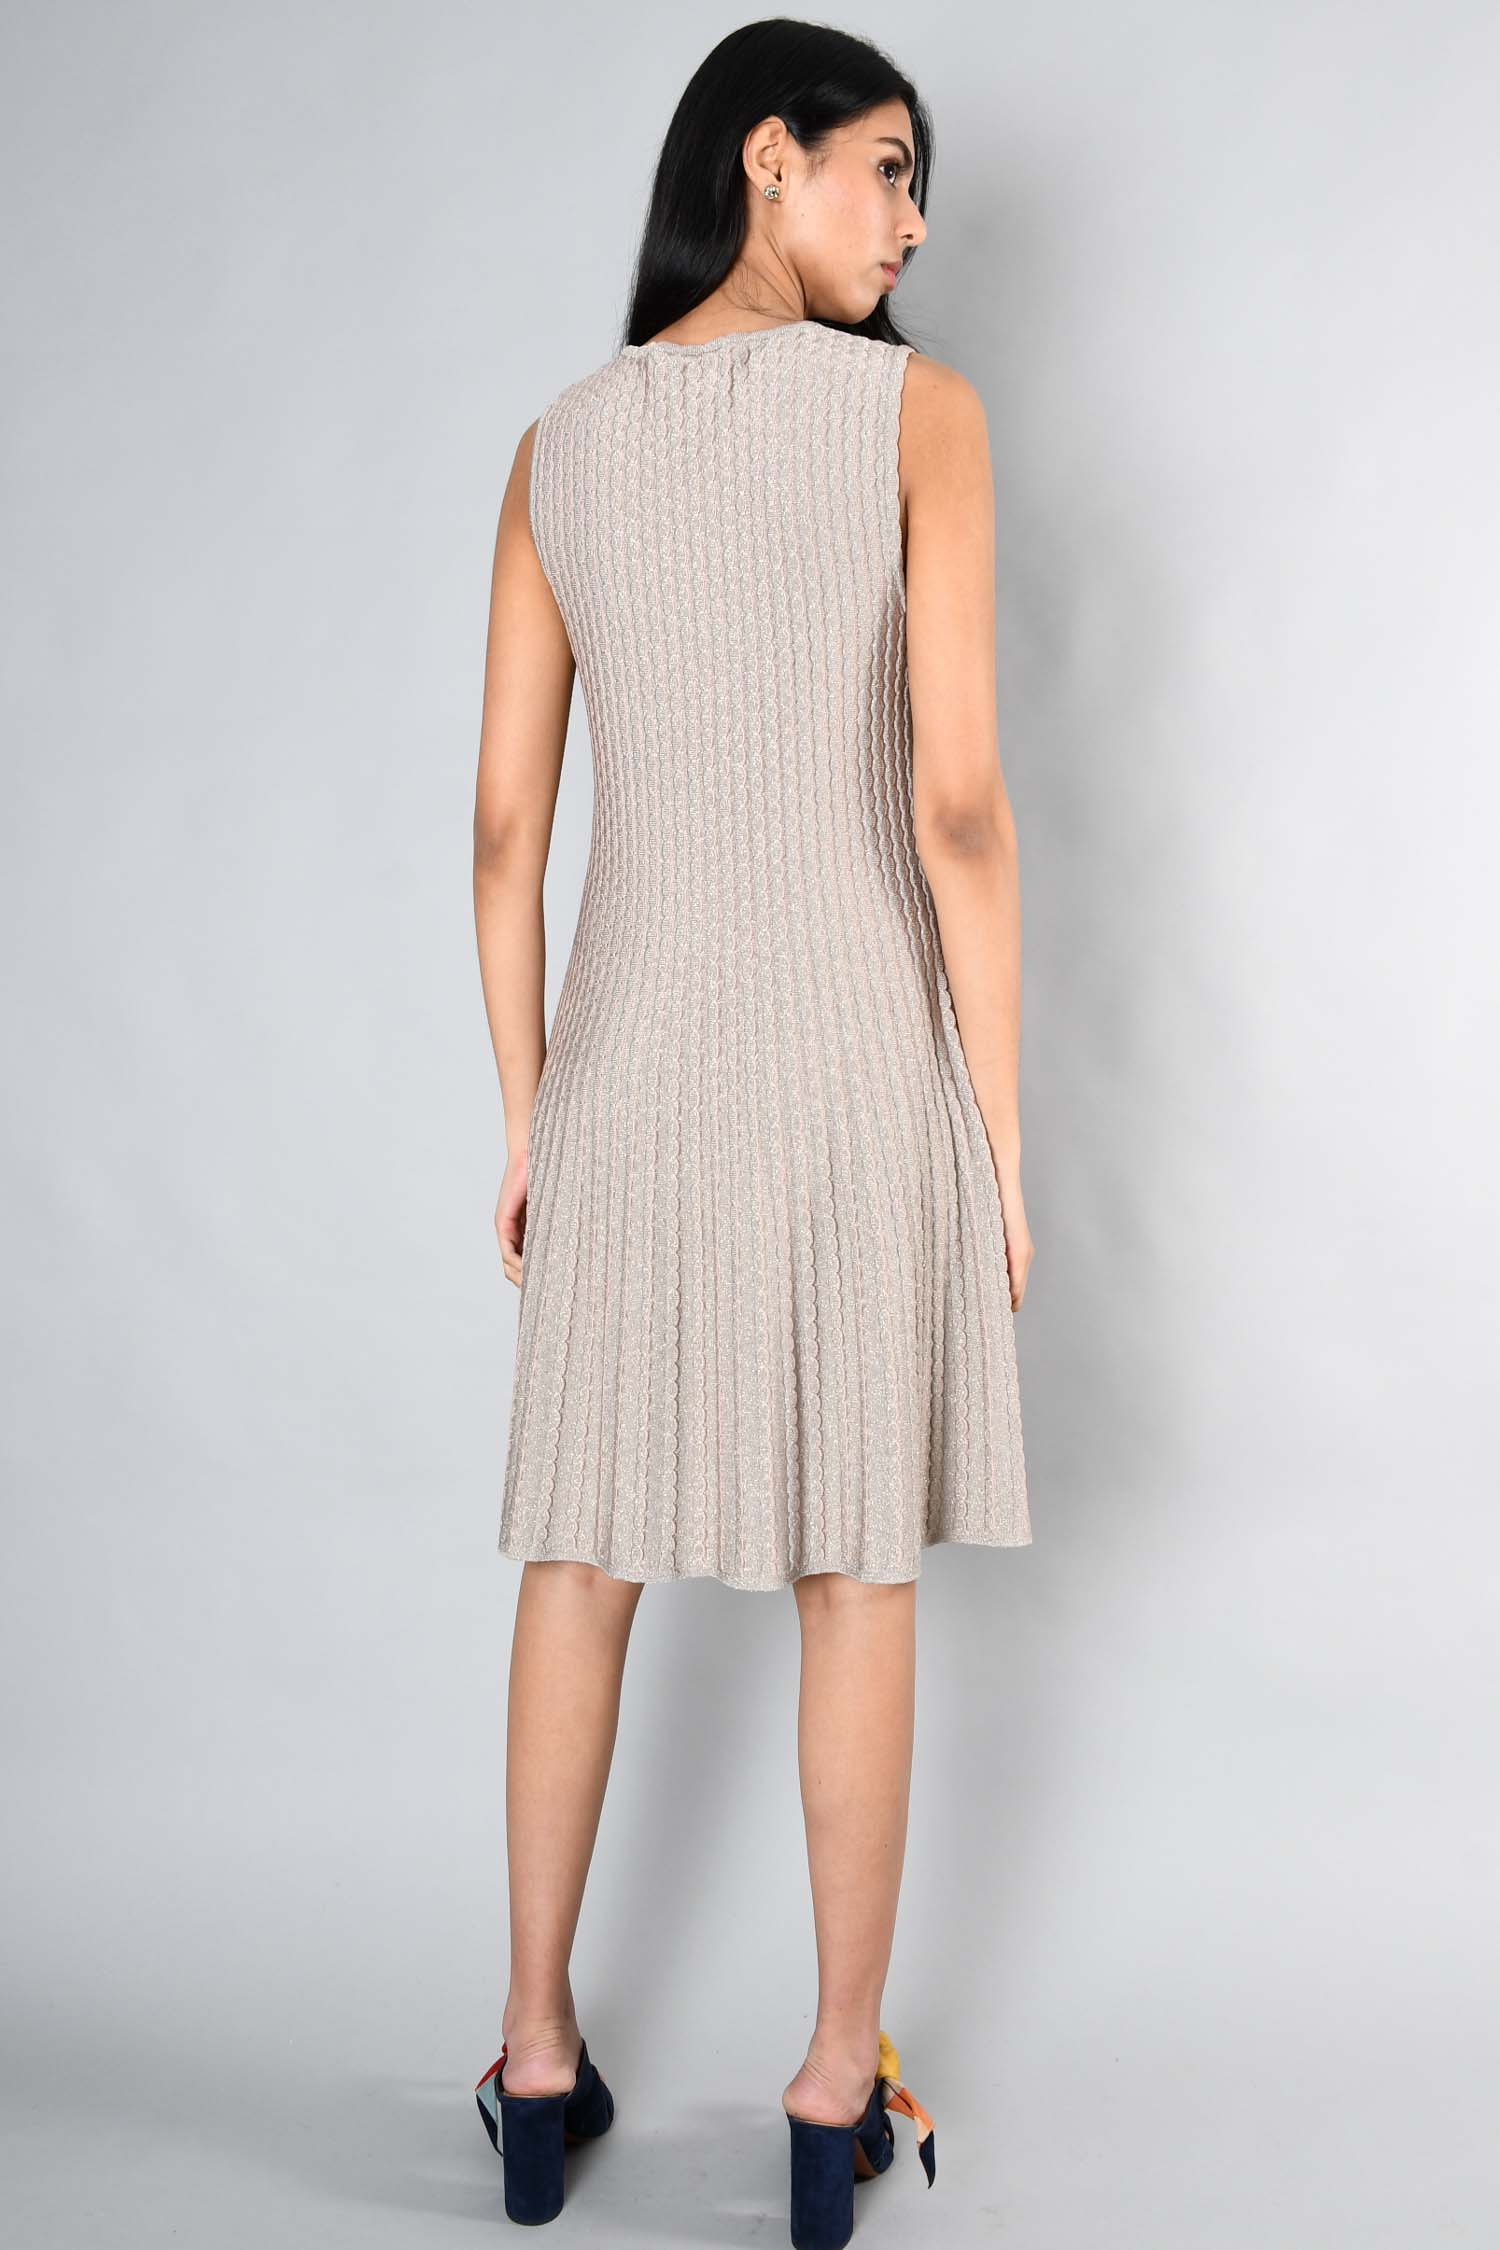 Missoni Blush Knit Dress Size 46